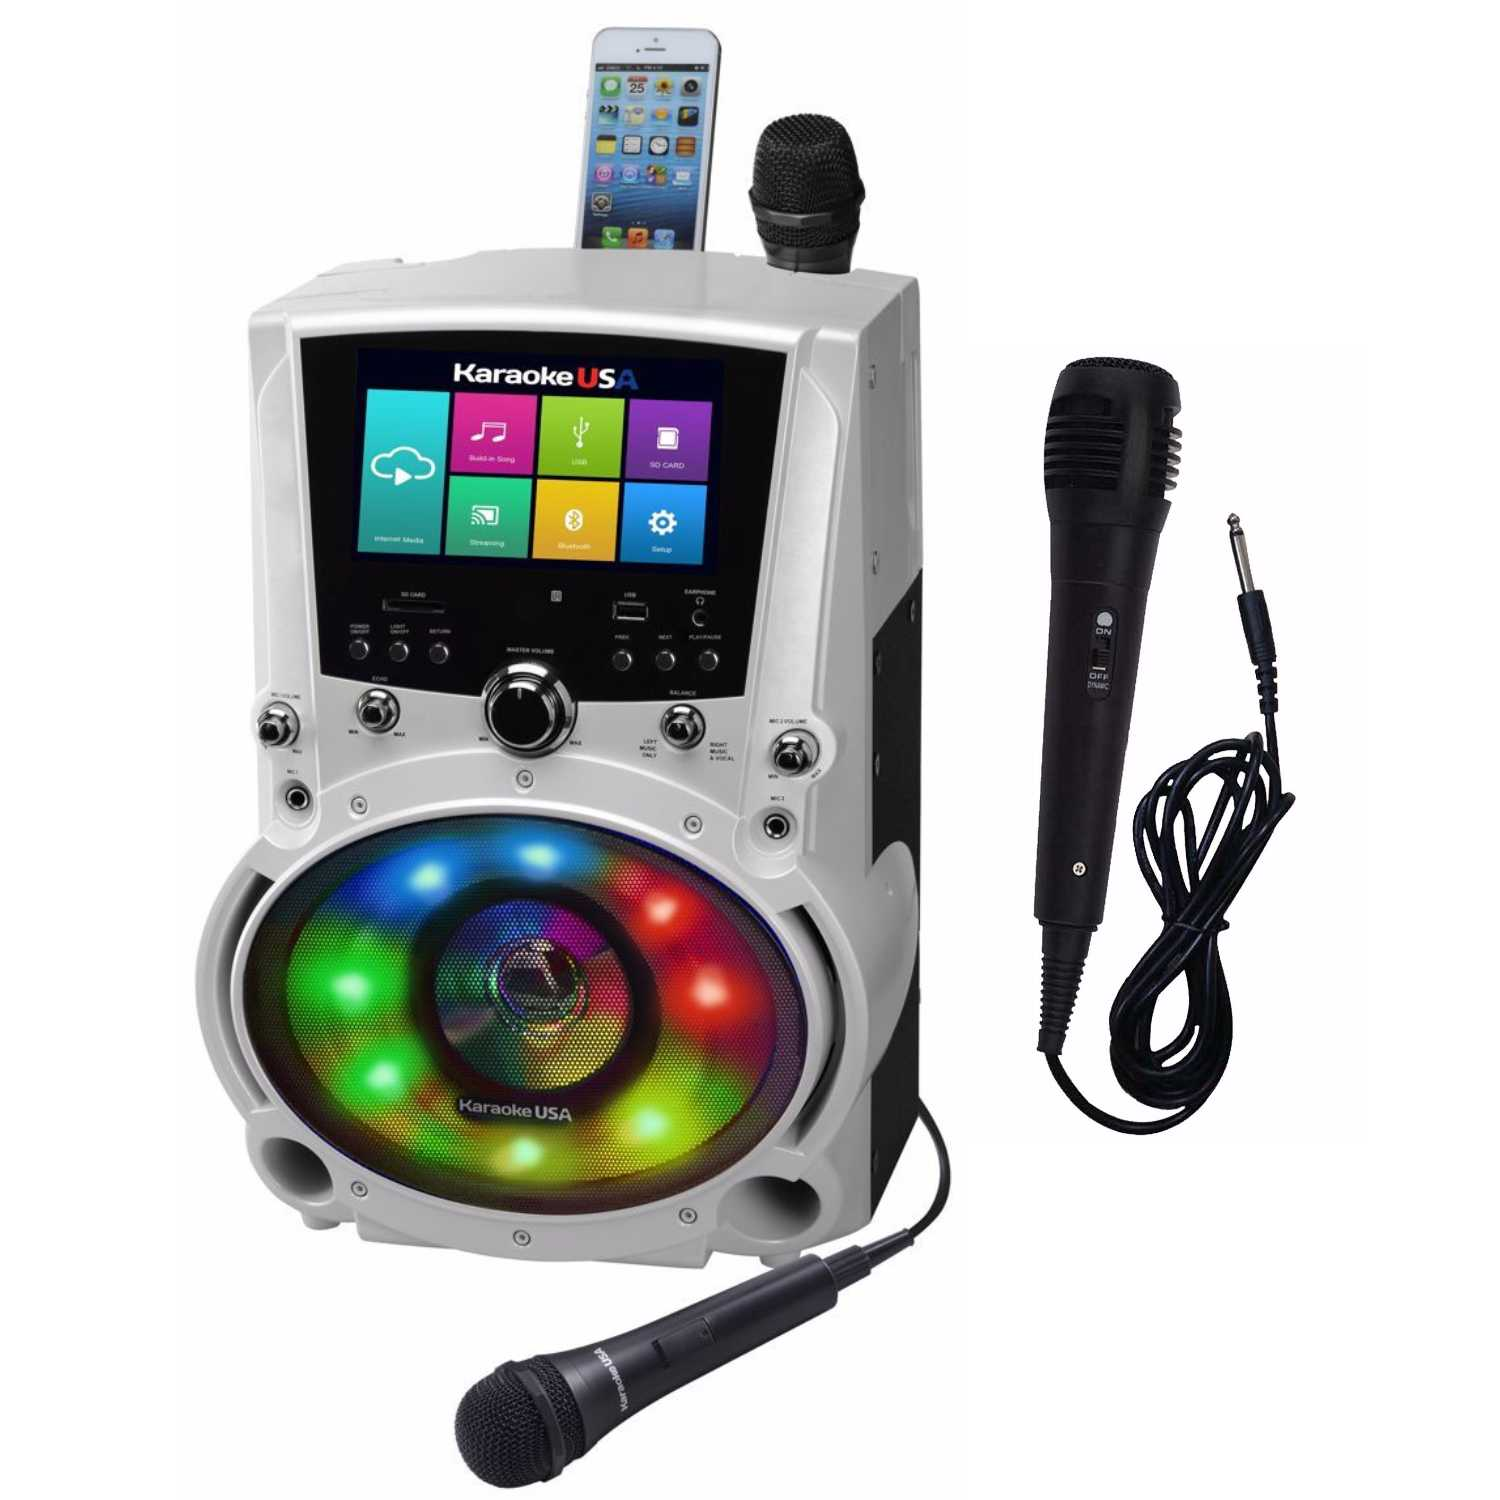 "Complete Wi-Fi Karaoke USA System with 7"" LCD Touch Screen, Recording Option and... by Dok Solutions"